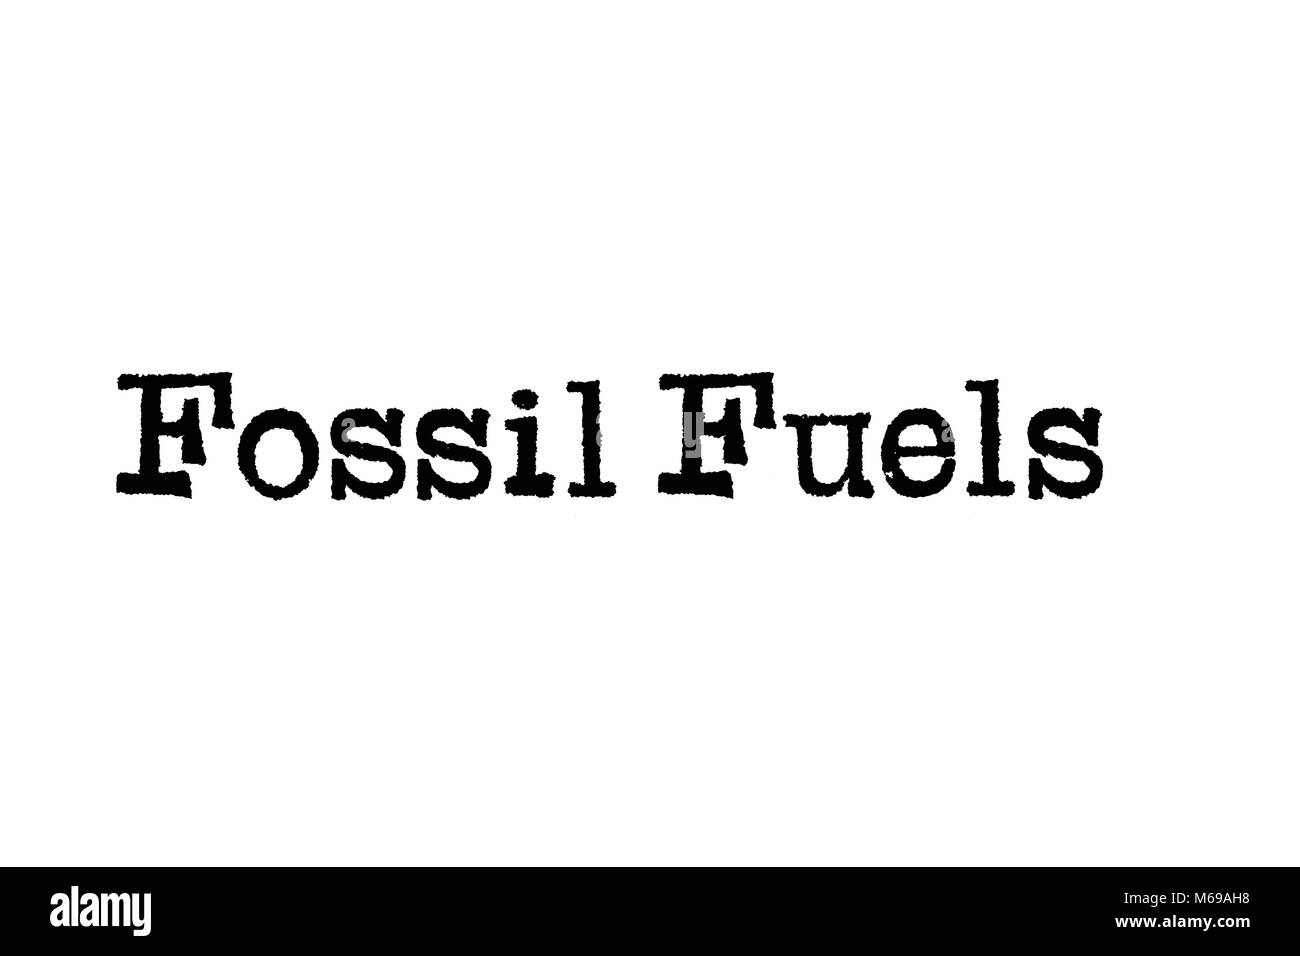 The word Fossil Fuels from a typewriter on a white background - Stock Image